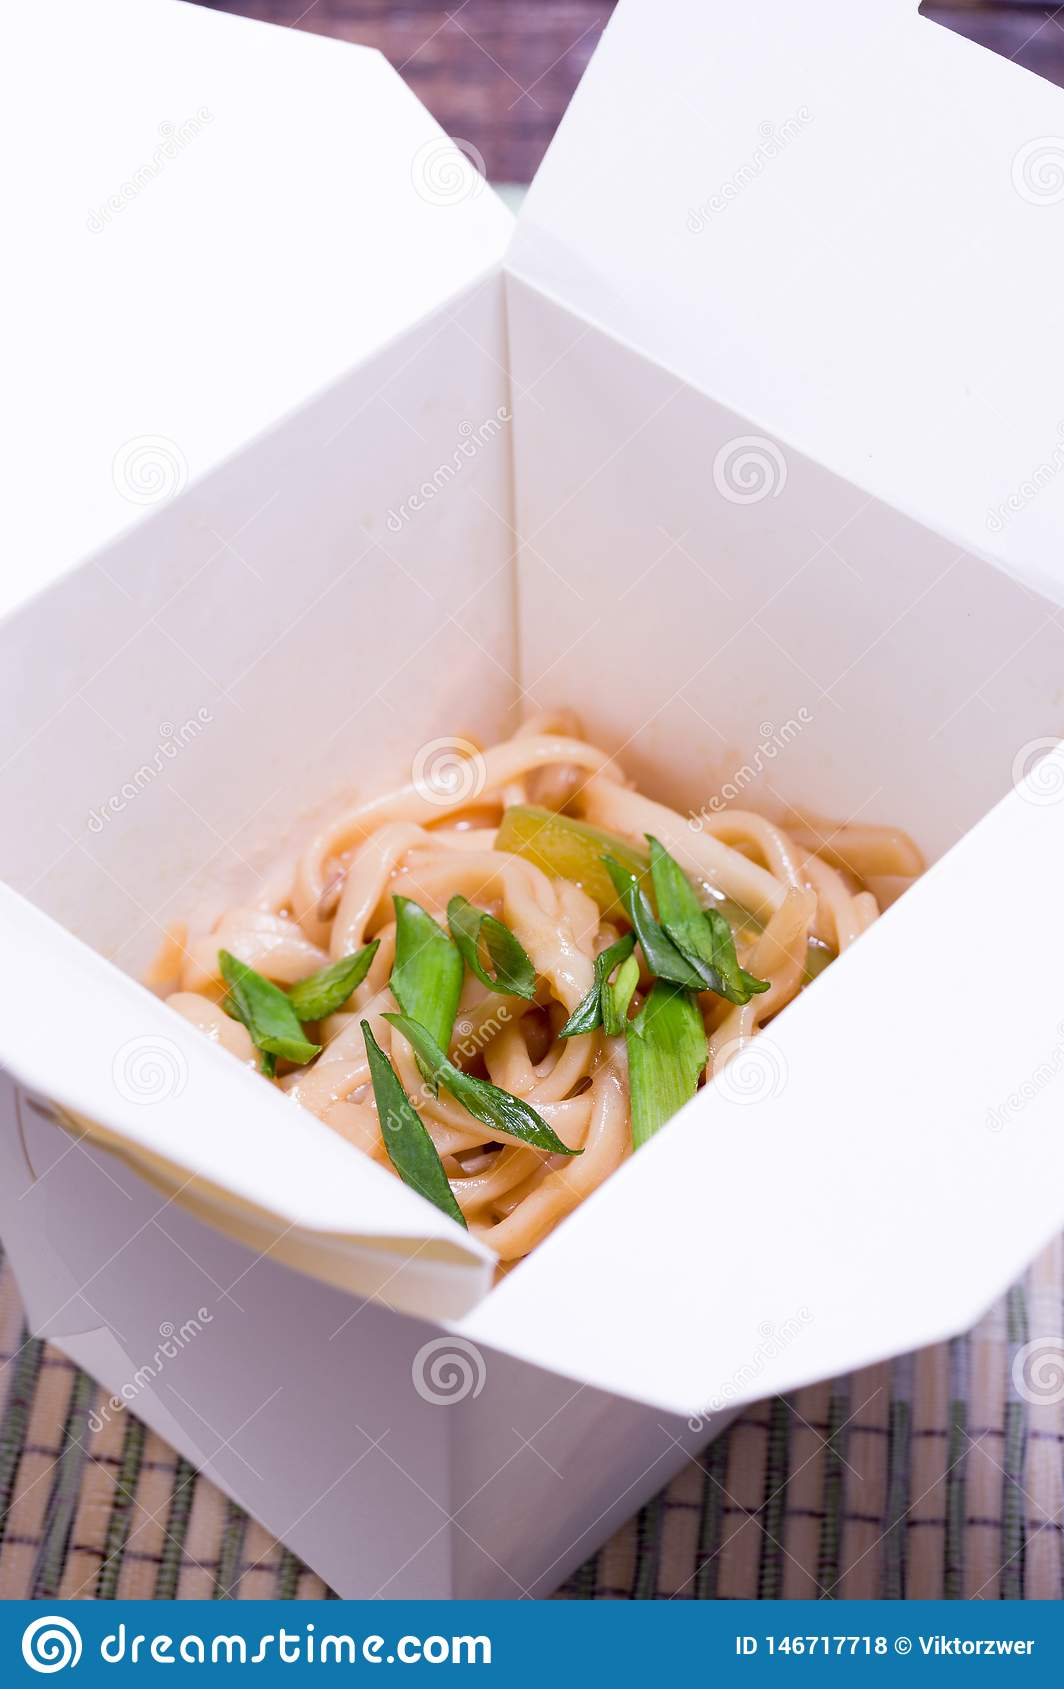 Flat noodles in a cardboard container. Vertical frame